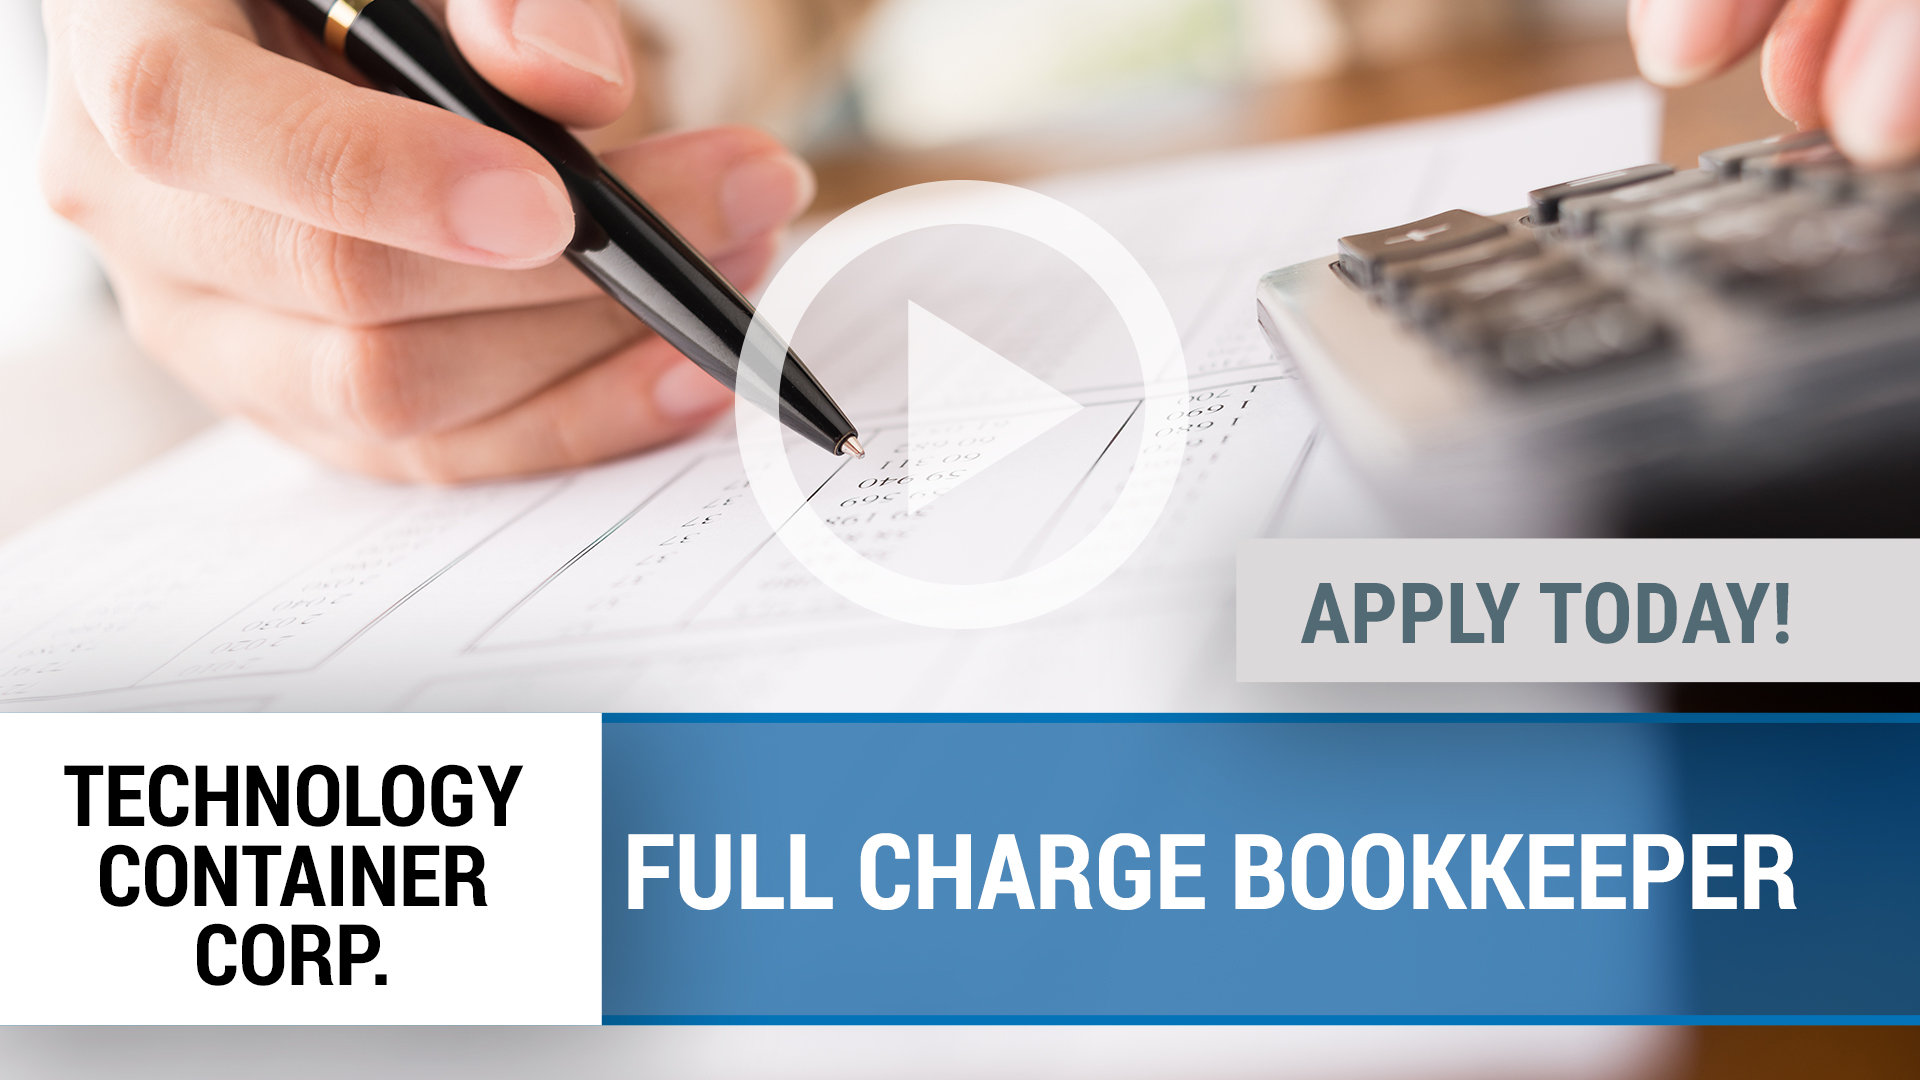 Watch our careers video for available job opening FULL CHARGE BOOKKEEPER in Desoto, TX